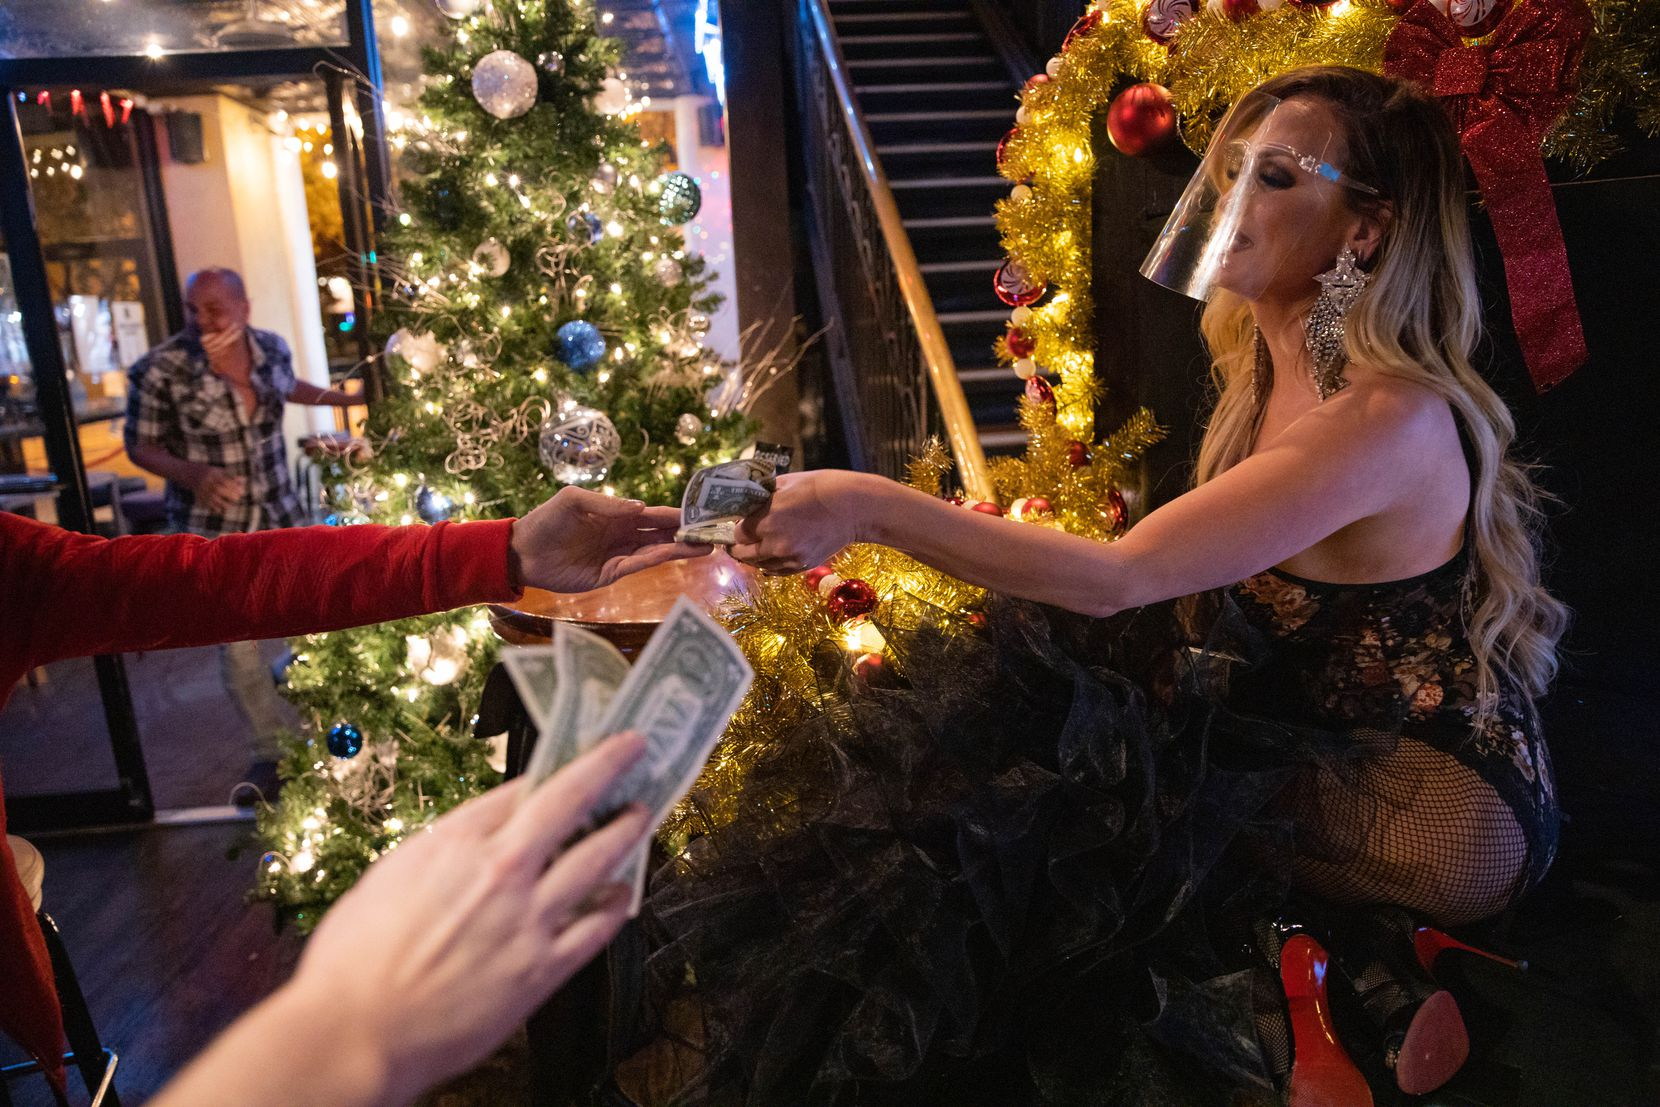 Krystal Summers accepts tips while performing Dec. 12 at JR's Bar and Grill in Dallas during the first drag show since pandemic restrictions began.